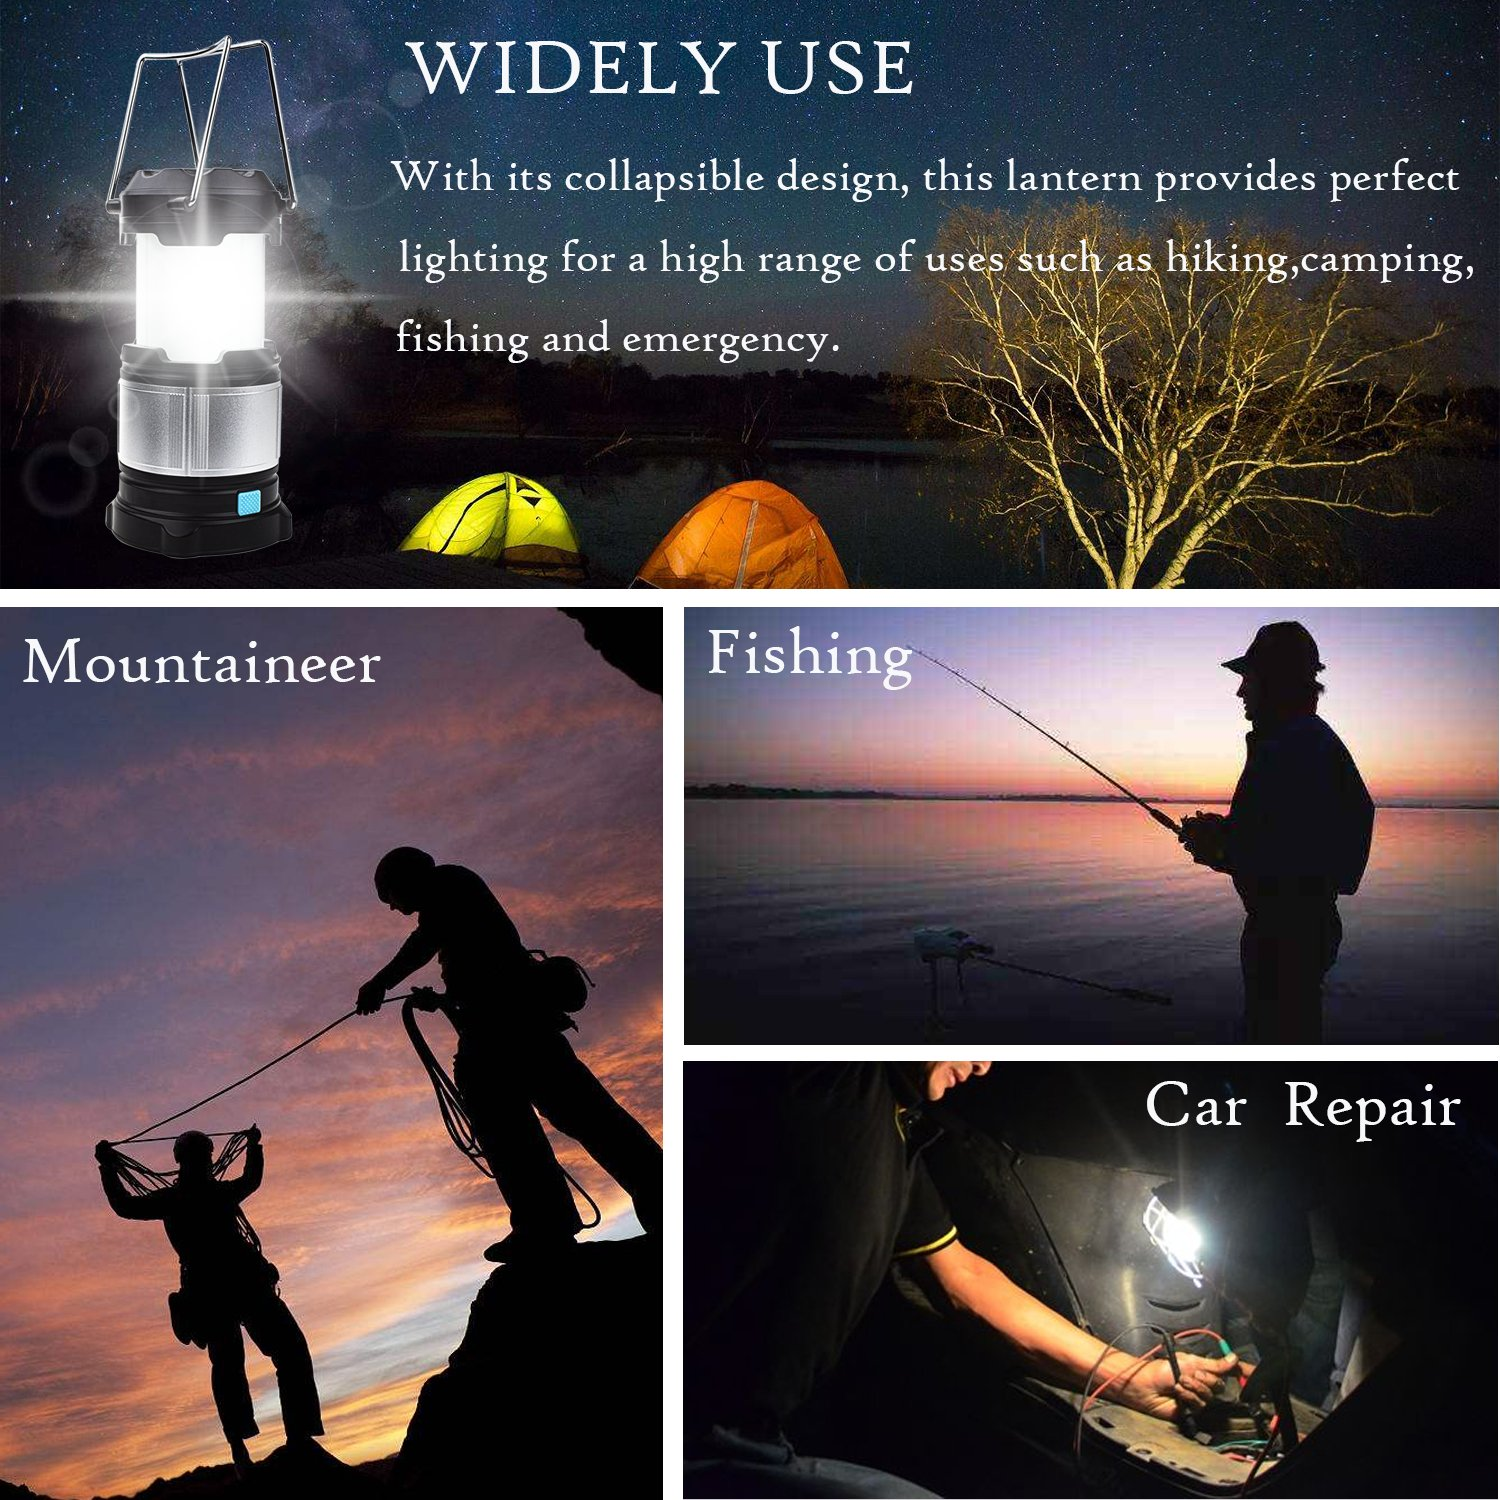 Alcoon 2 Packs Rechargeable LED Camping Lantern Light Lamp with 5600mAh Power Bank, Portable Collapsible Waterproof Outdoor Light with 18650 Li-ion Batteries for Camping Traveling Tent, Emergency by Alcoon (Image #6)